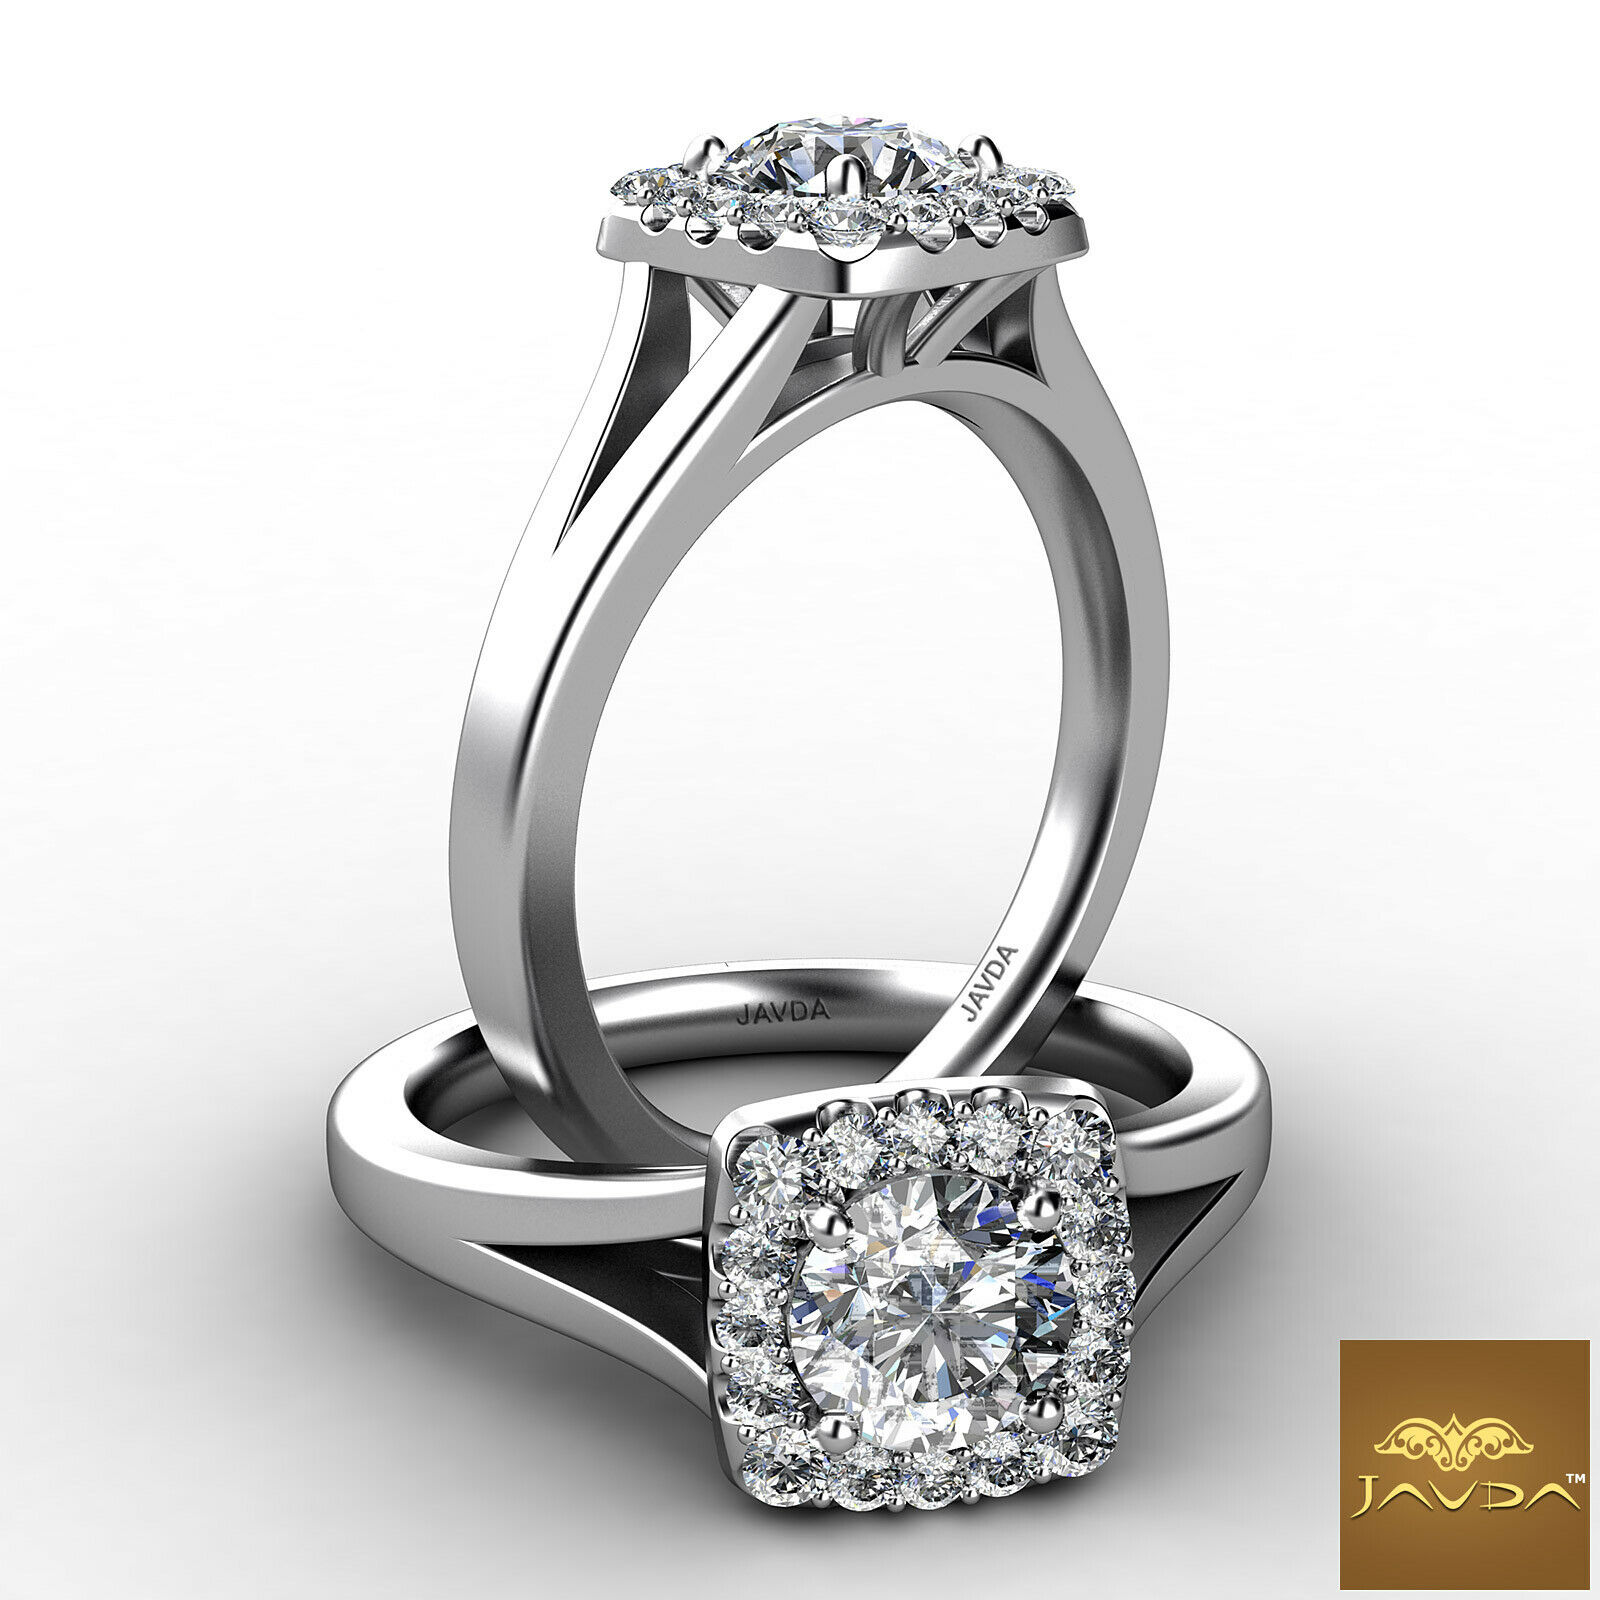 0.6ctw Halo Split Shank Cathedral Round Diamond Engagement Ring GIA H-VS2 W Gold